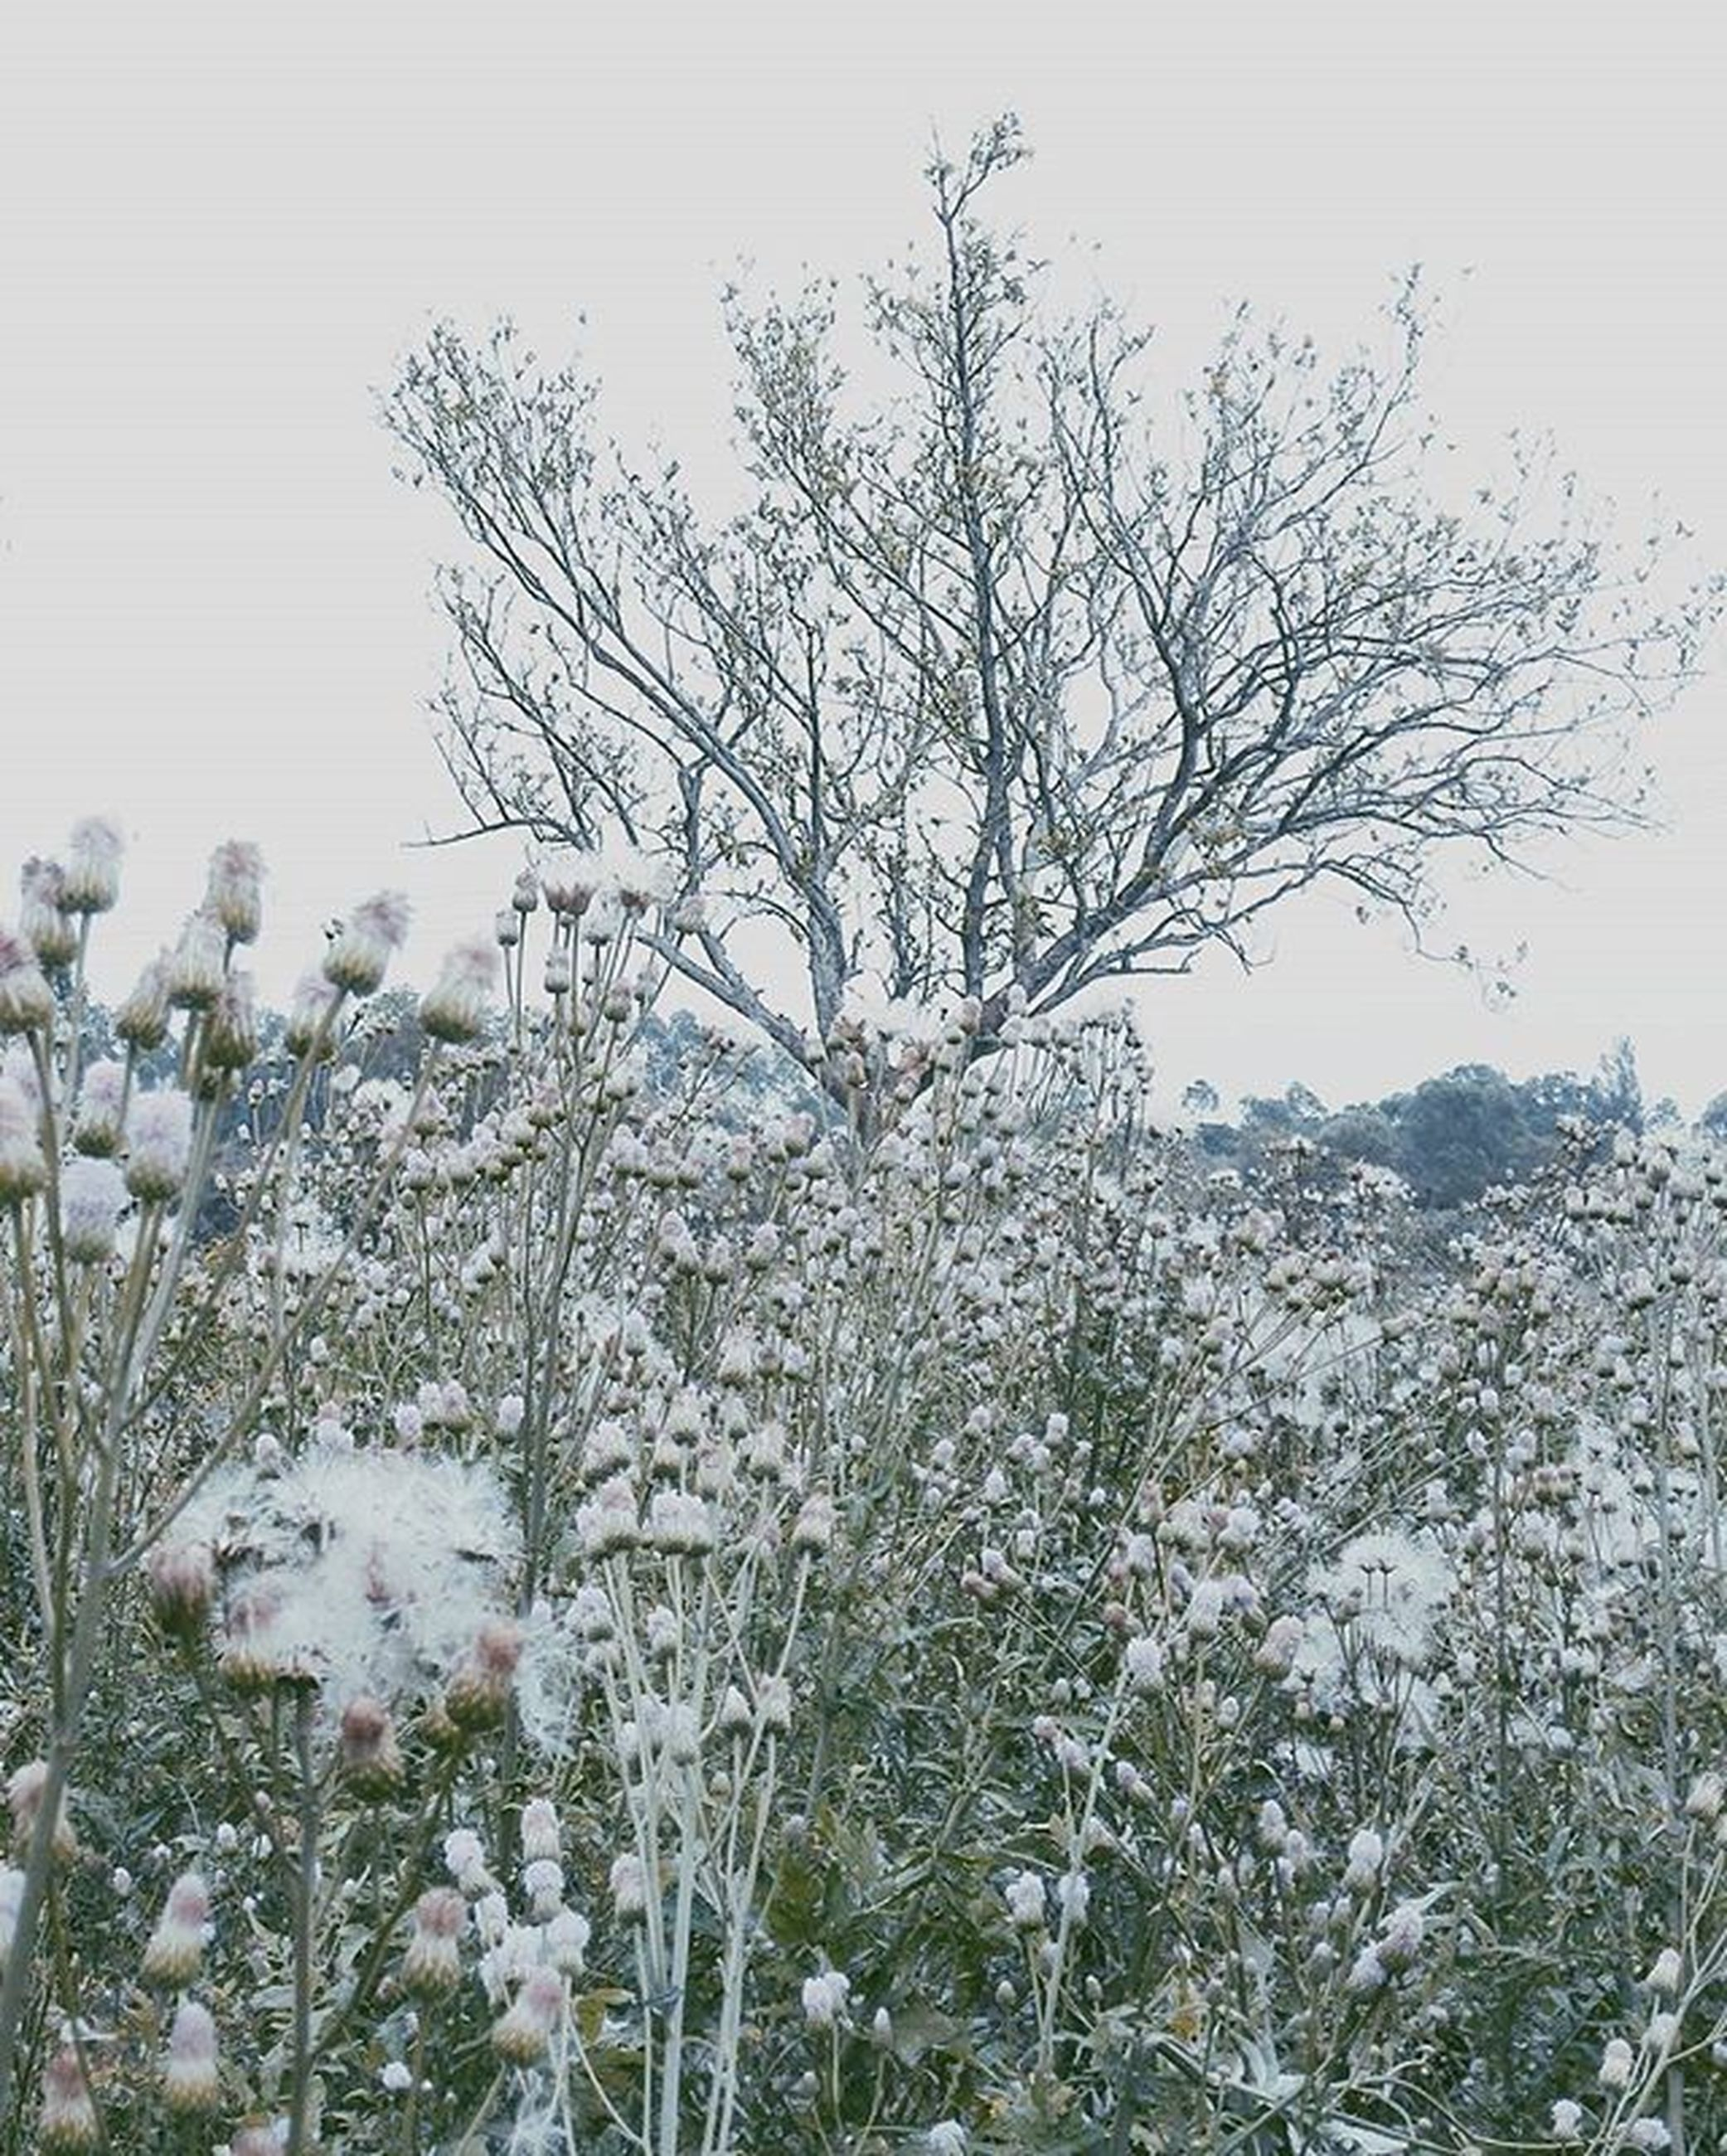 flower, clear sky, growth, nature, beauty in nature, tree, plant, branch, white color, tranquility, freshness, fragility, field, winter, tranquil scene, snow, season, cold temperature, stem, day